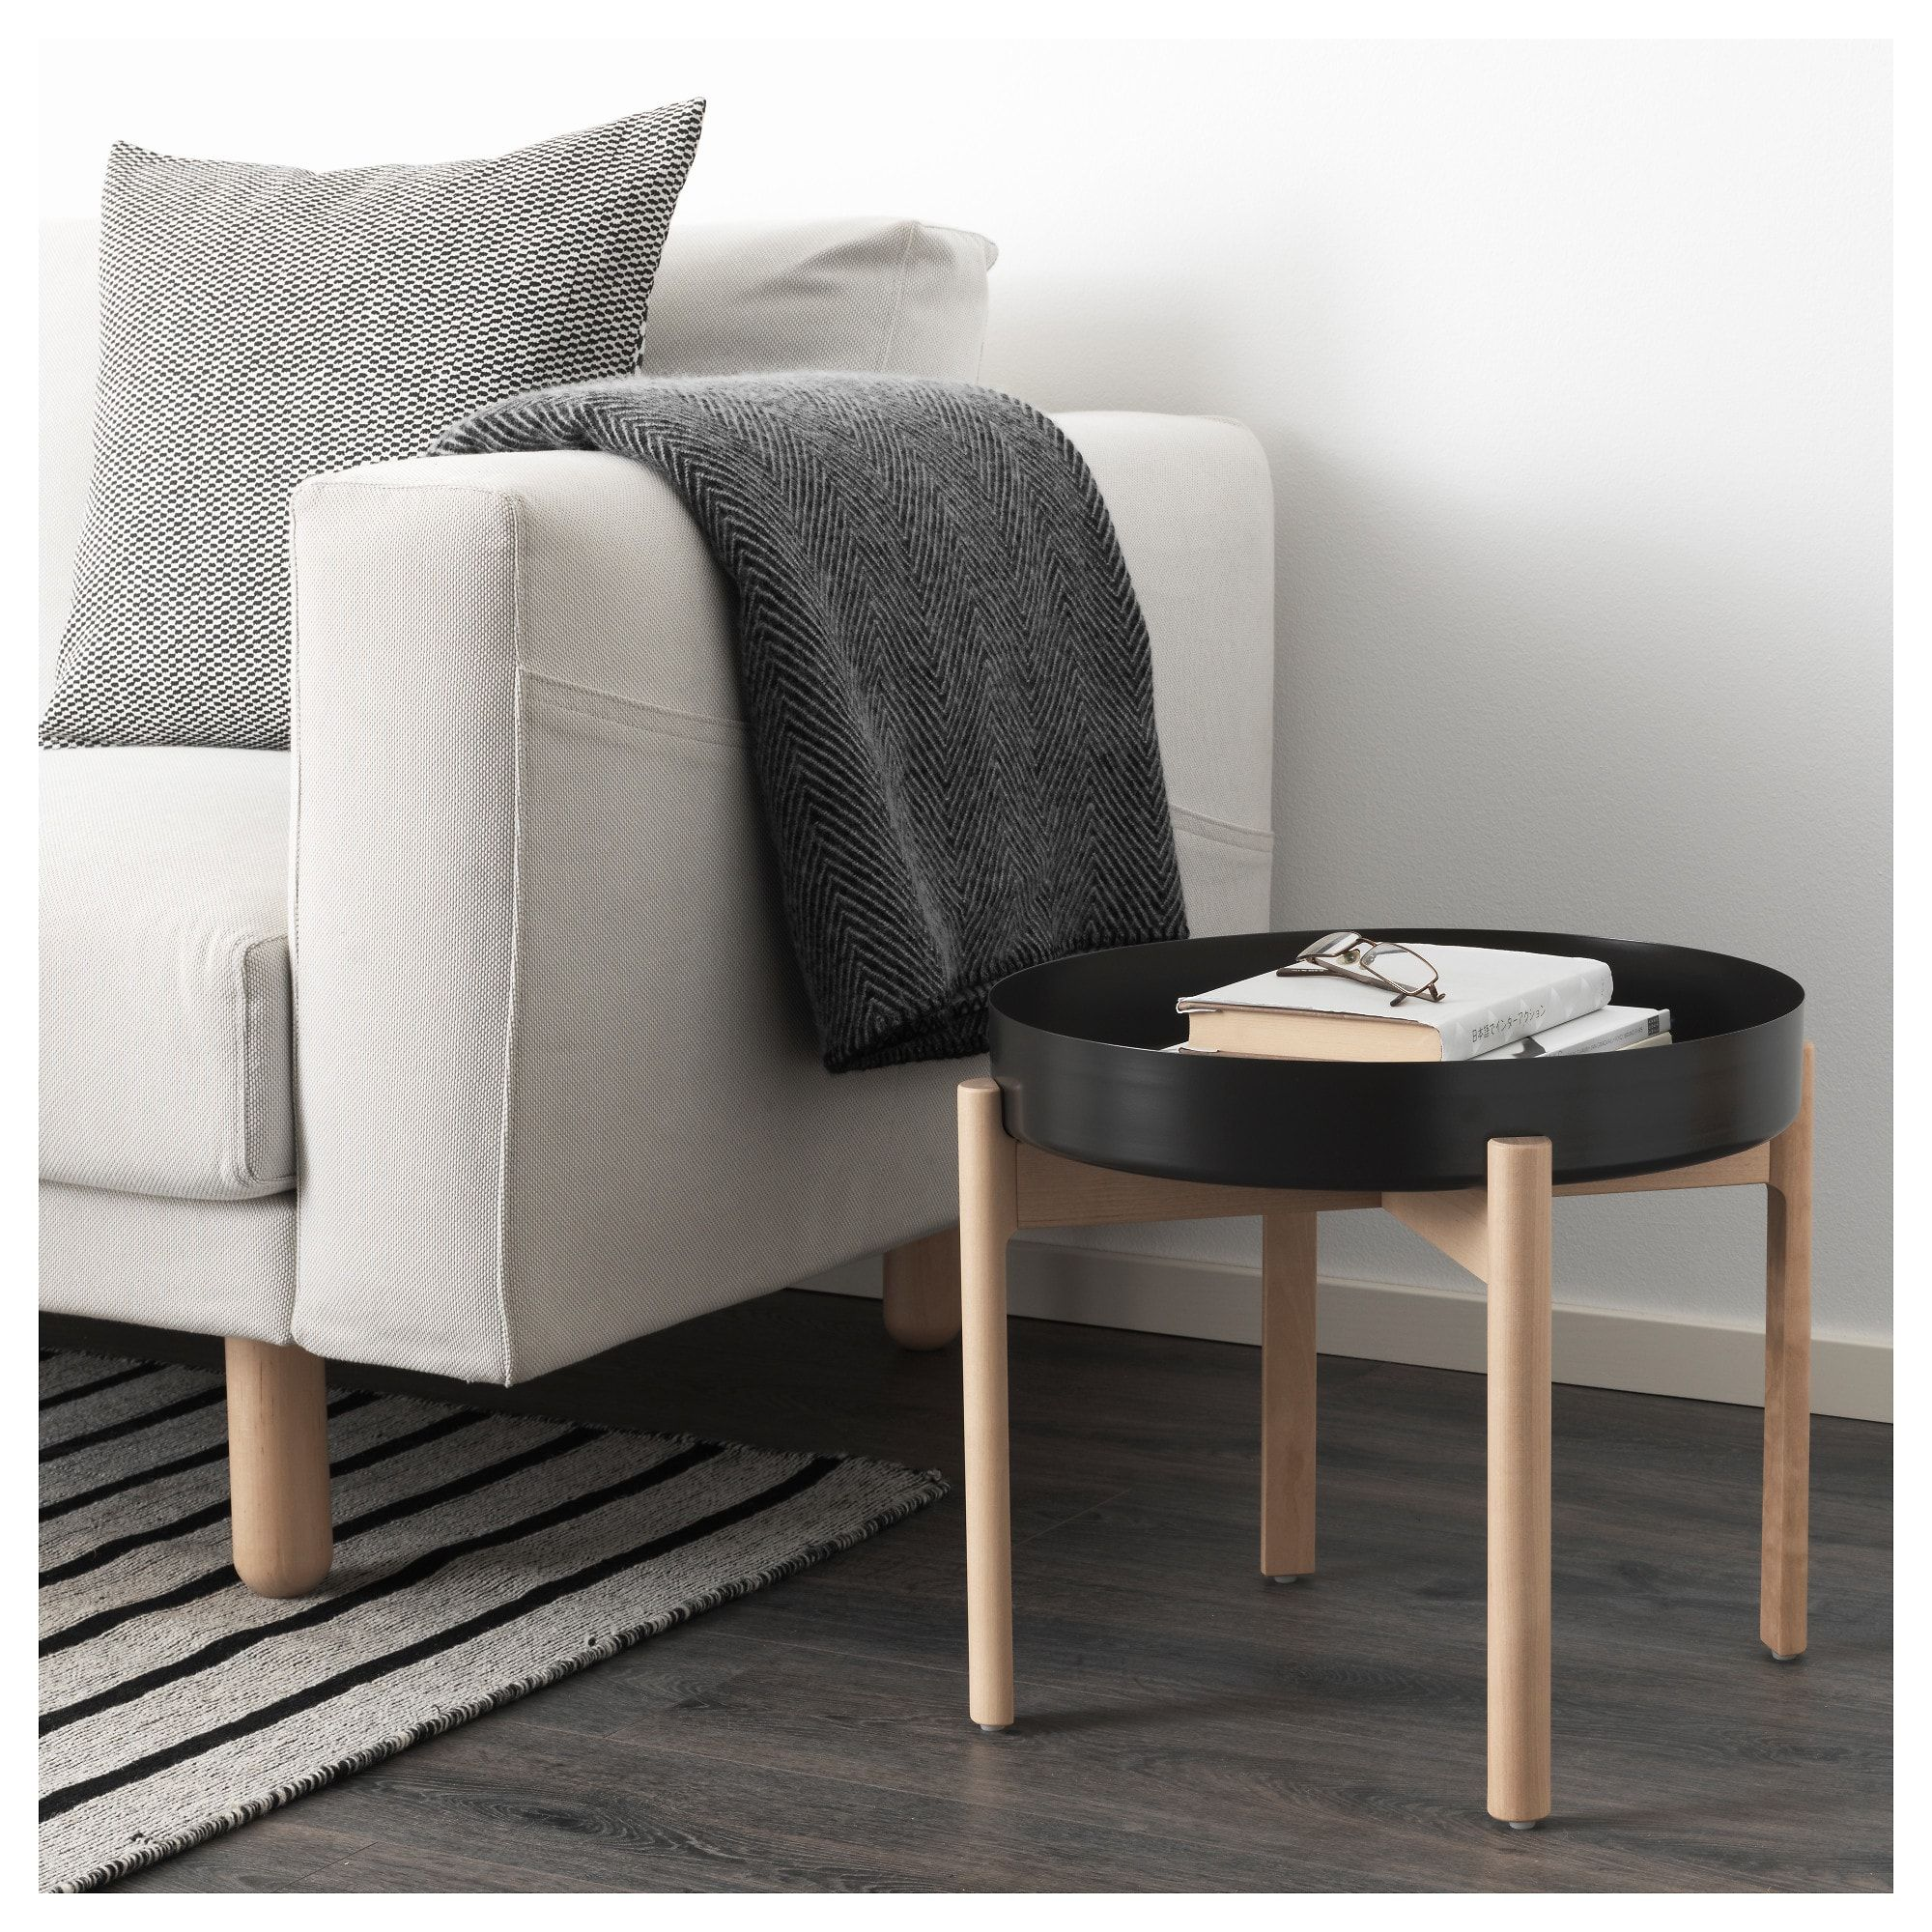 Sedie Ypperlig Ypperlig Coffee Table Dark Gray Birch Studio Apartments Ikea